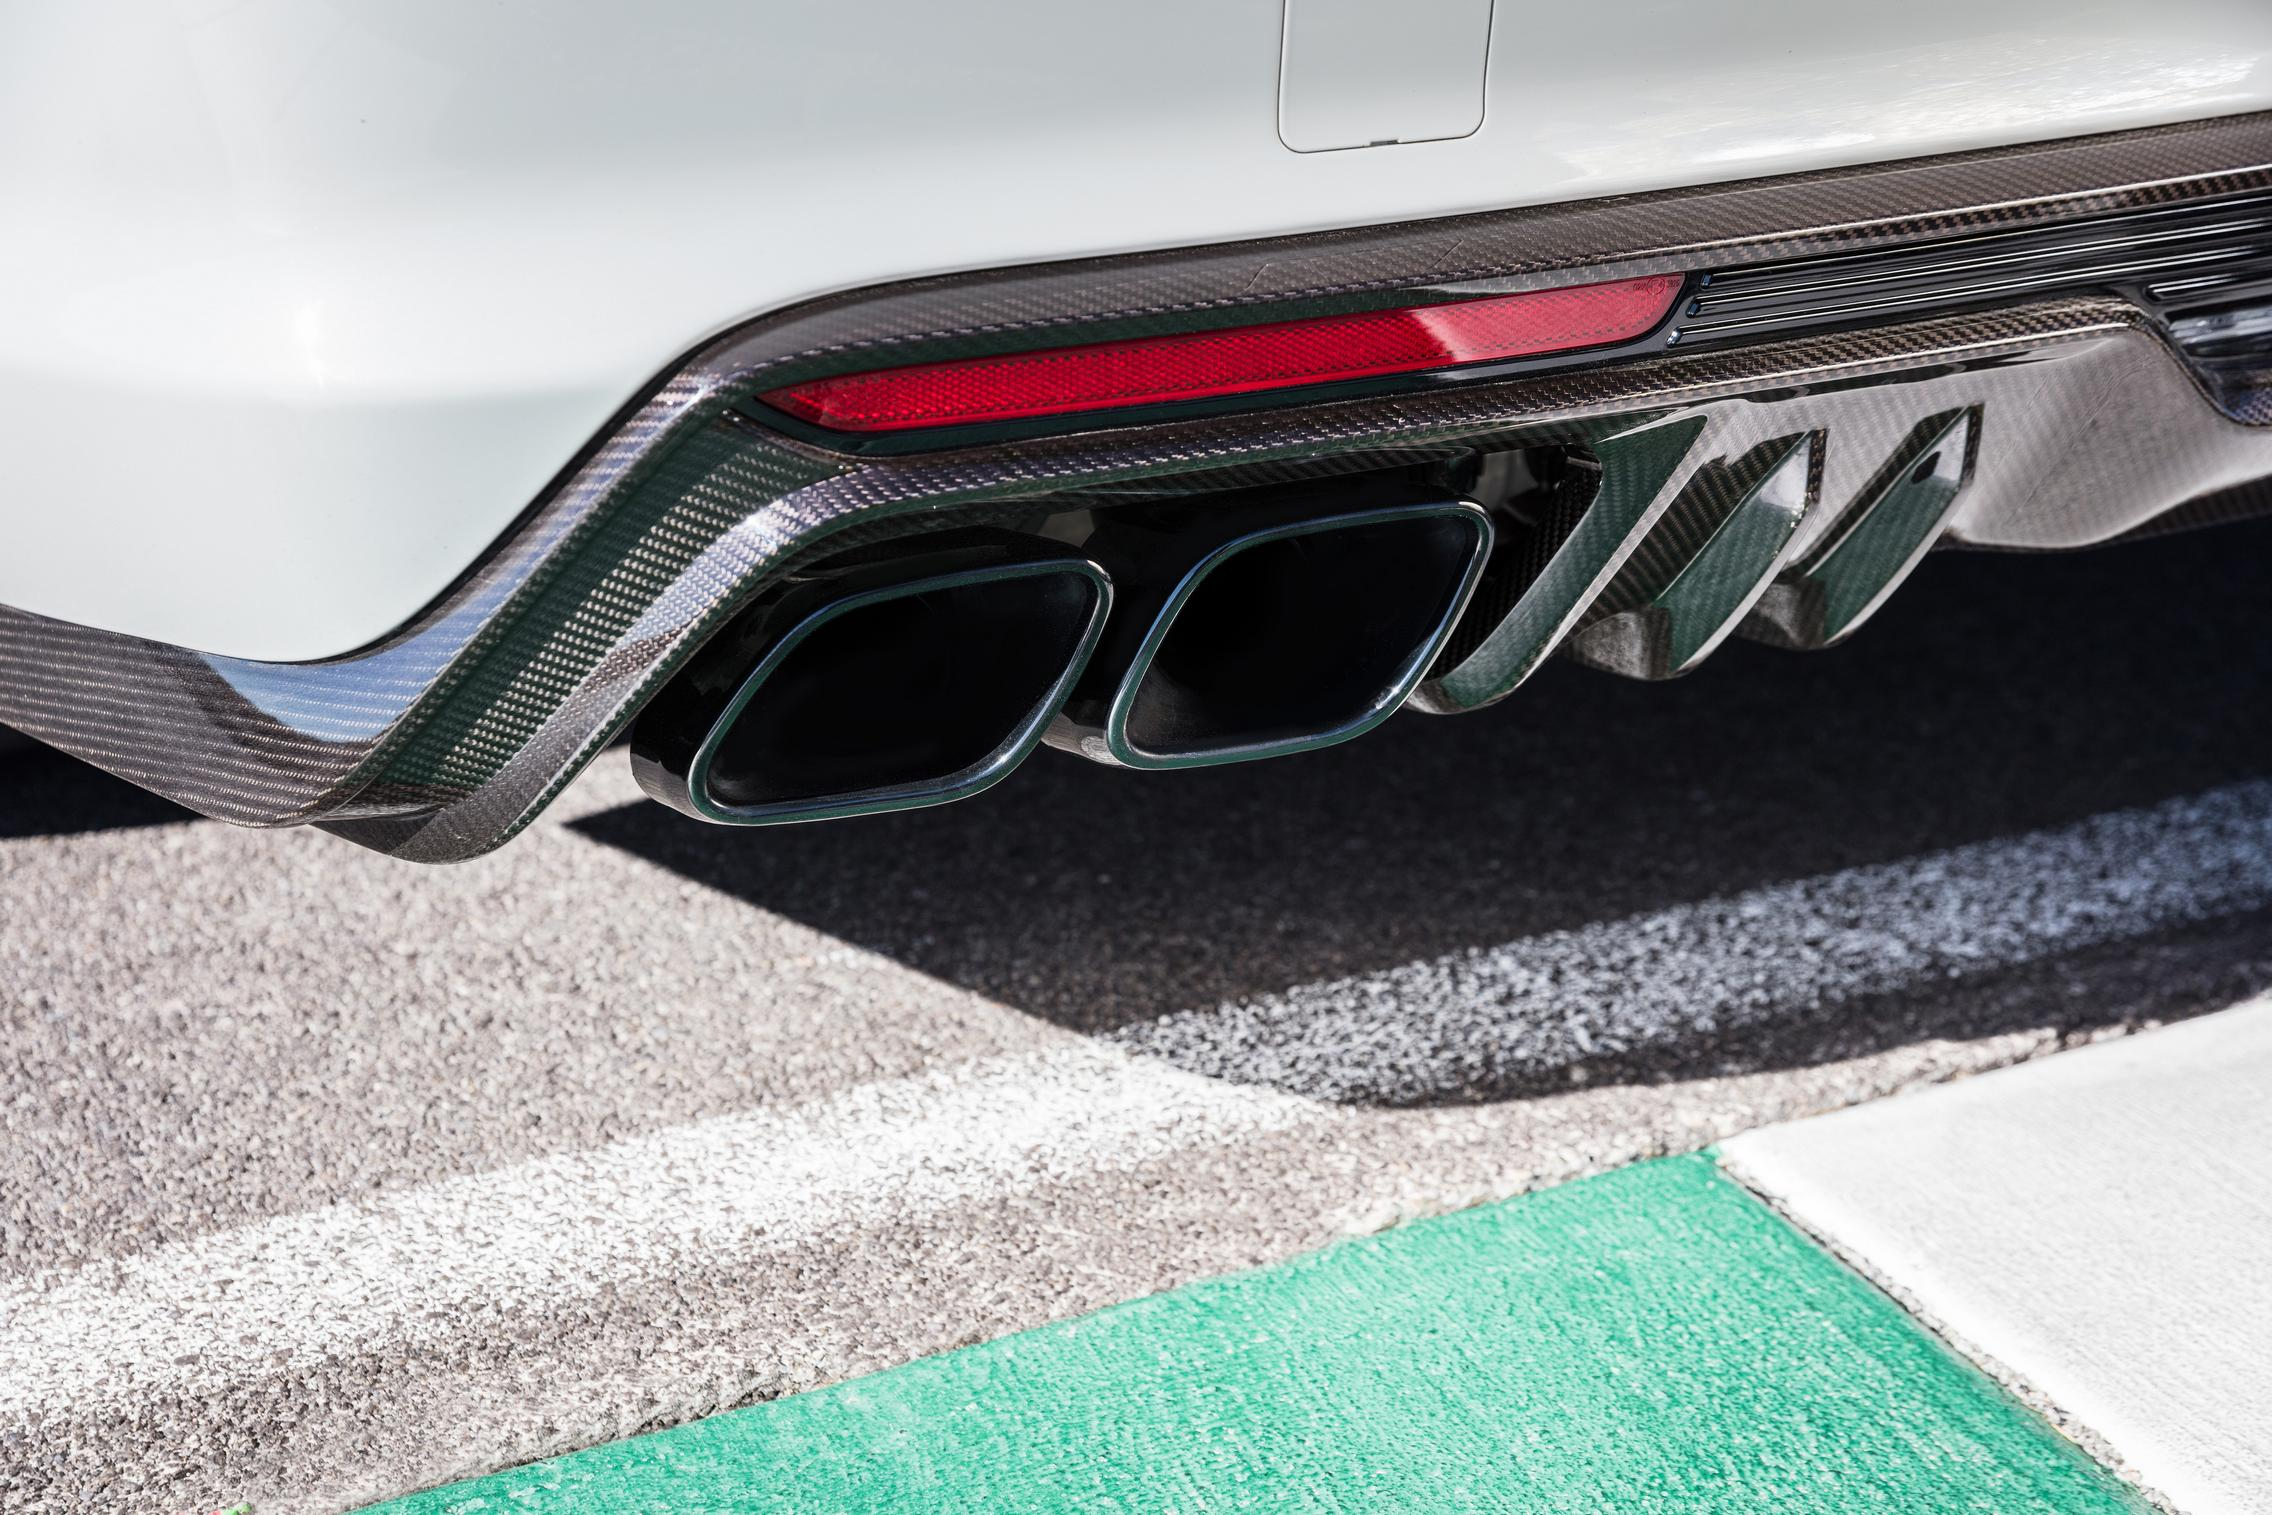 CT5-V Blackwing Exhaust